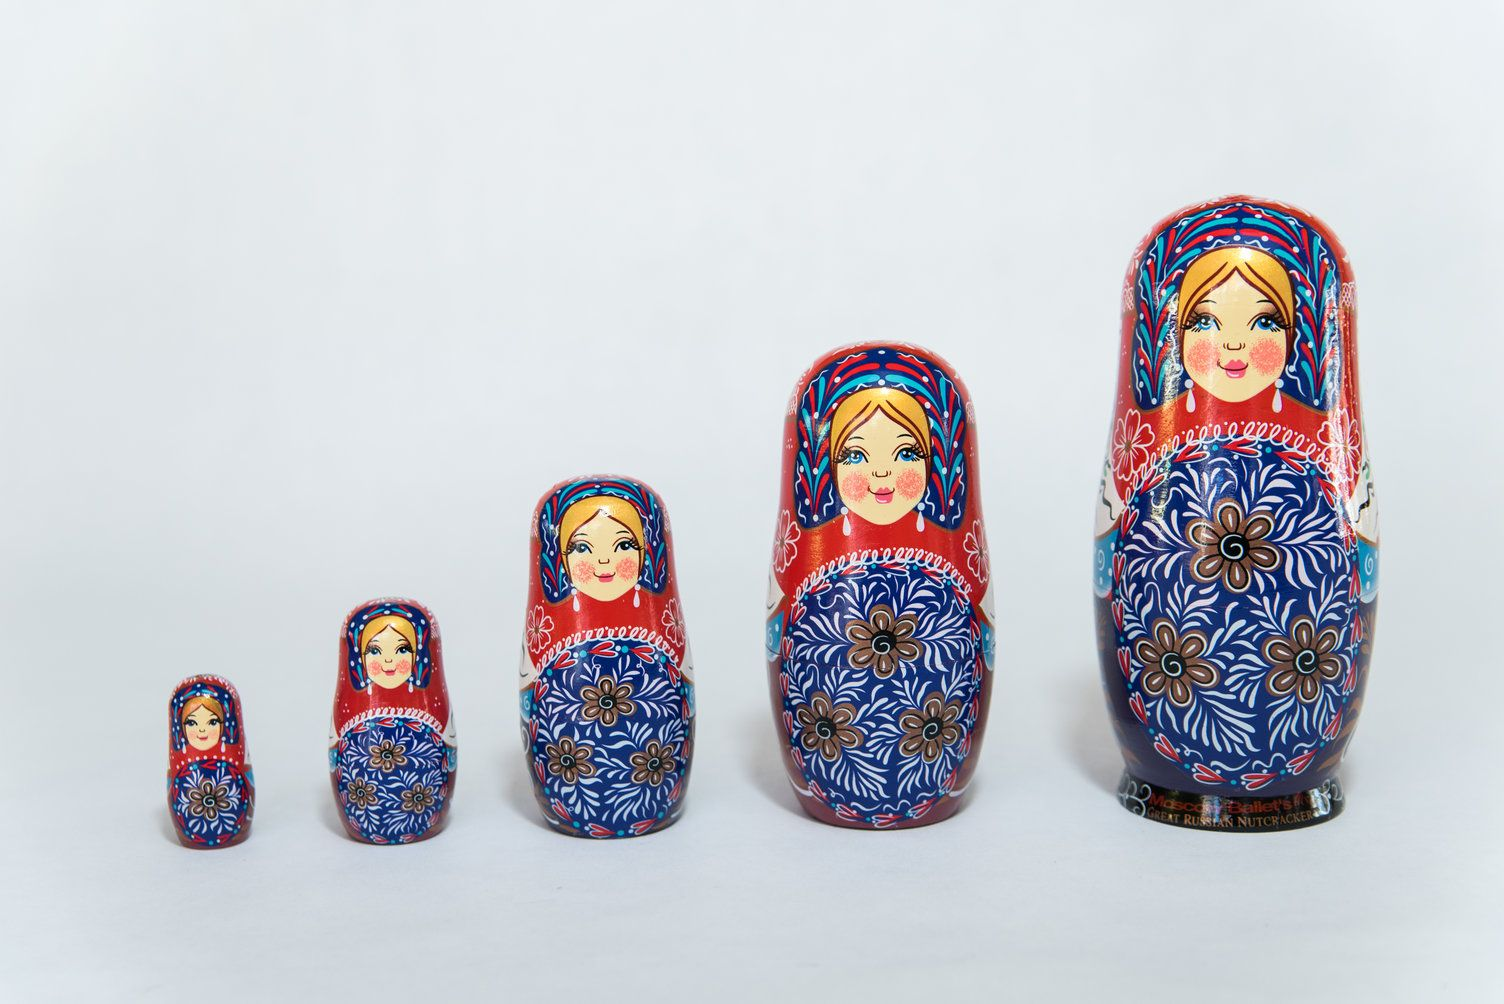 A Moscow Ballet Original Floral Nesting Doll